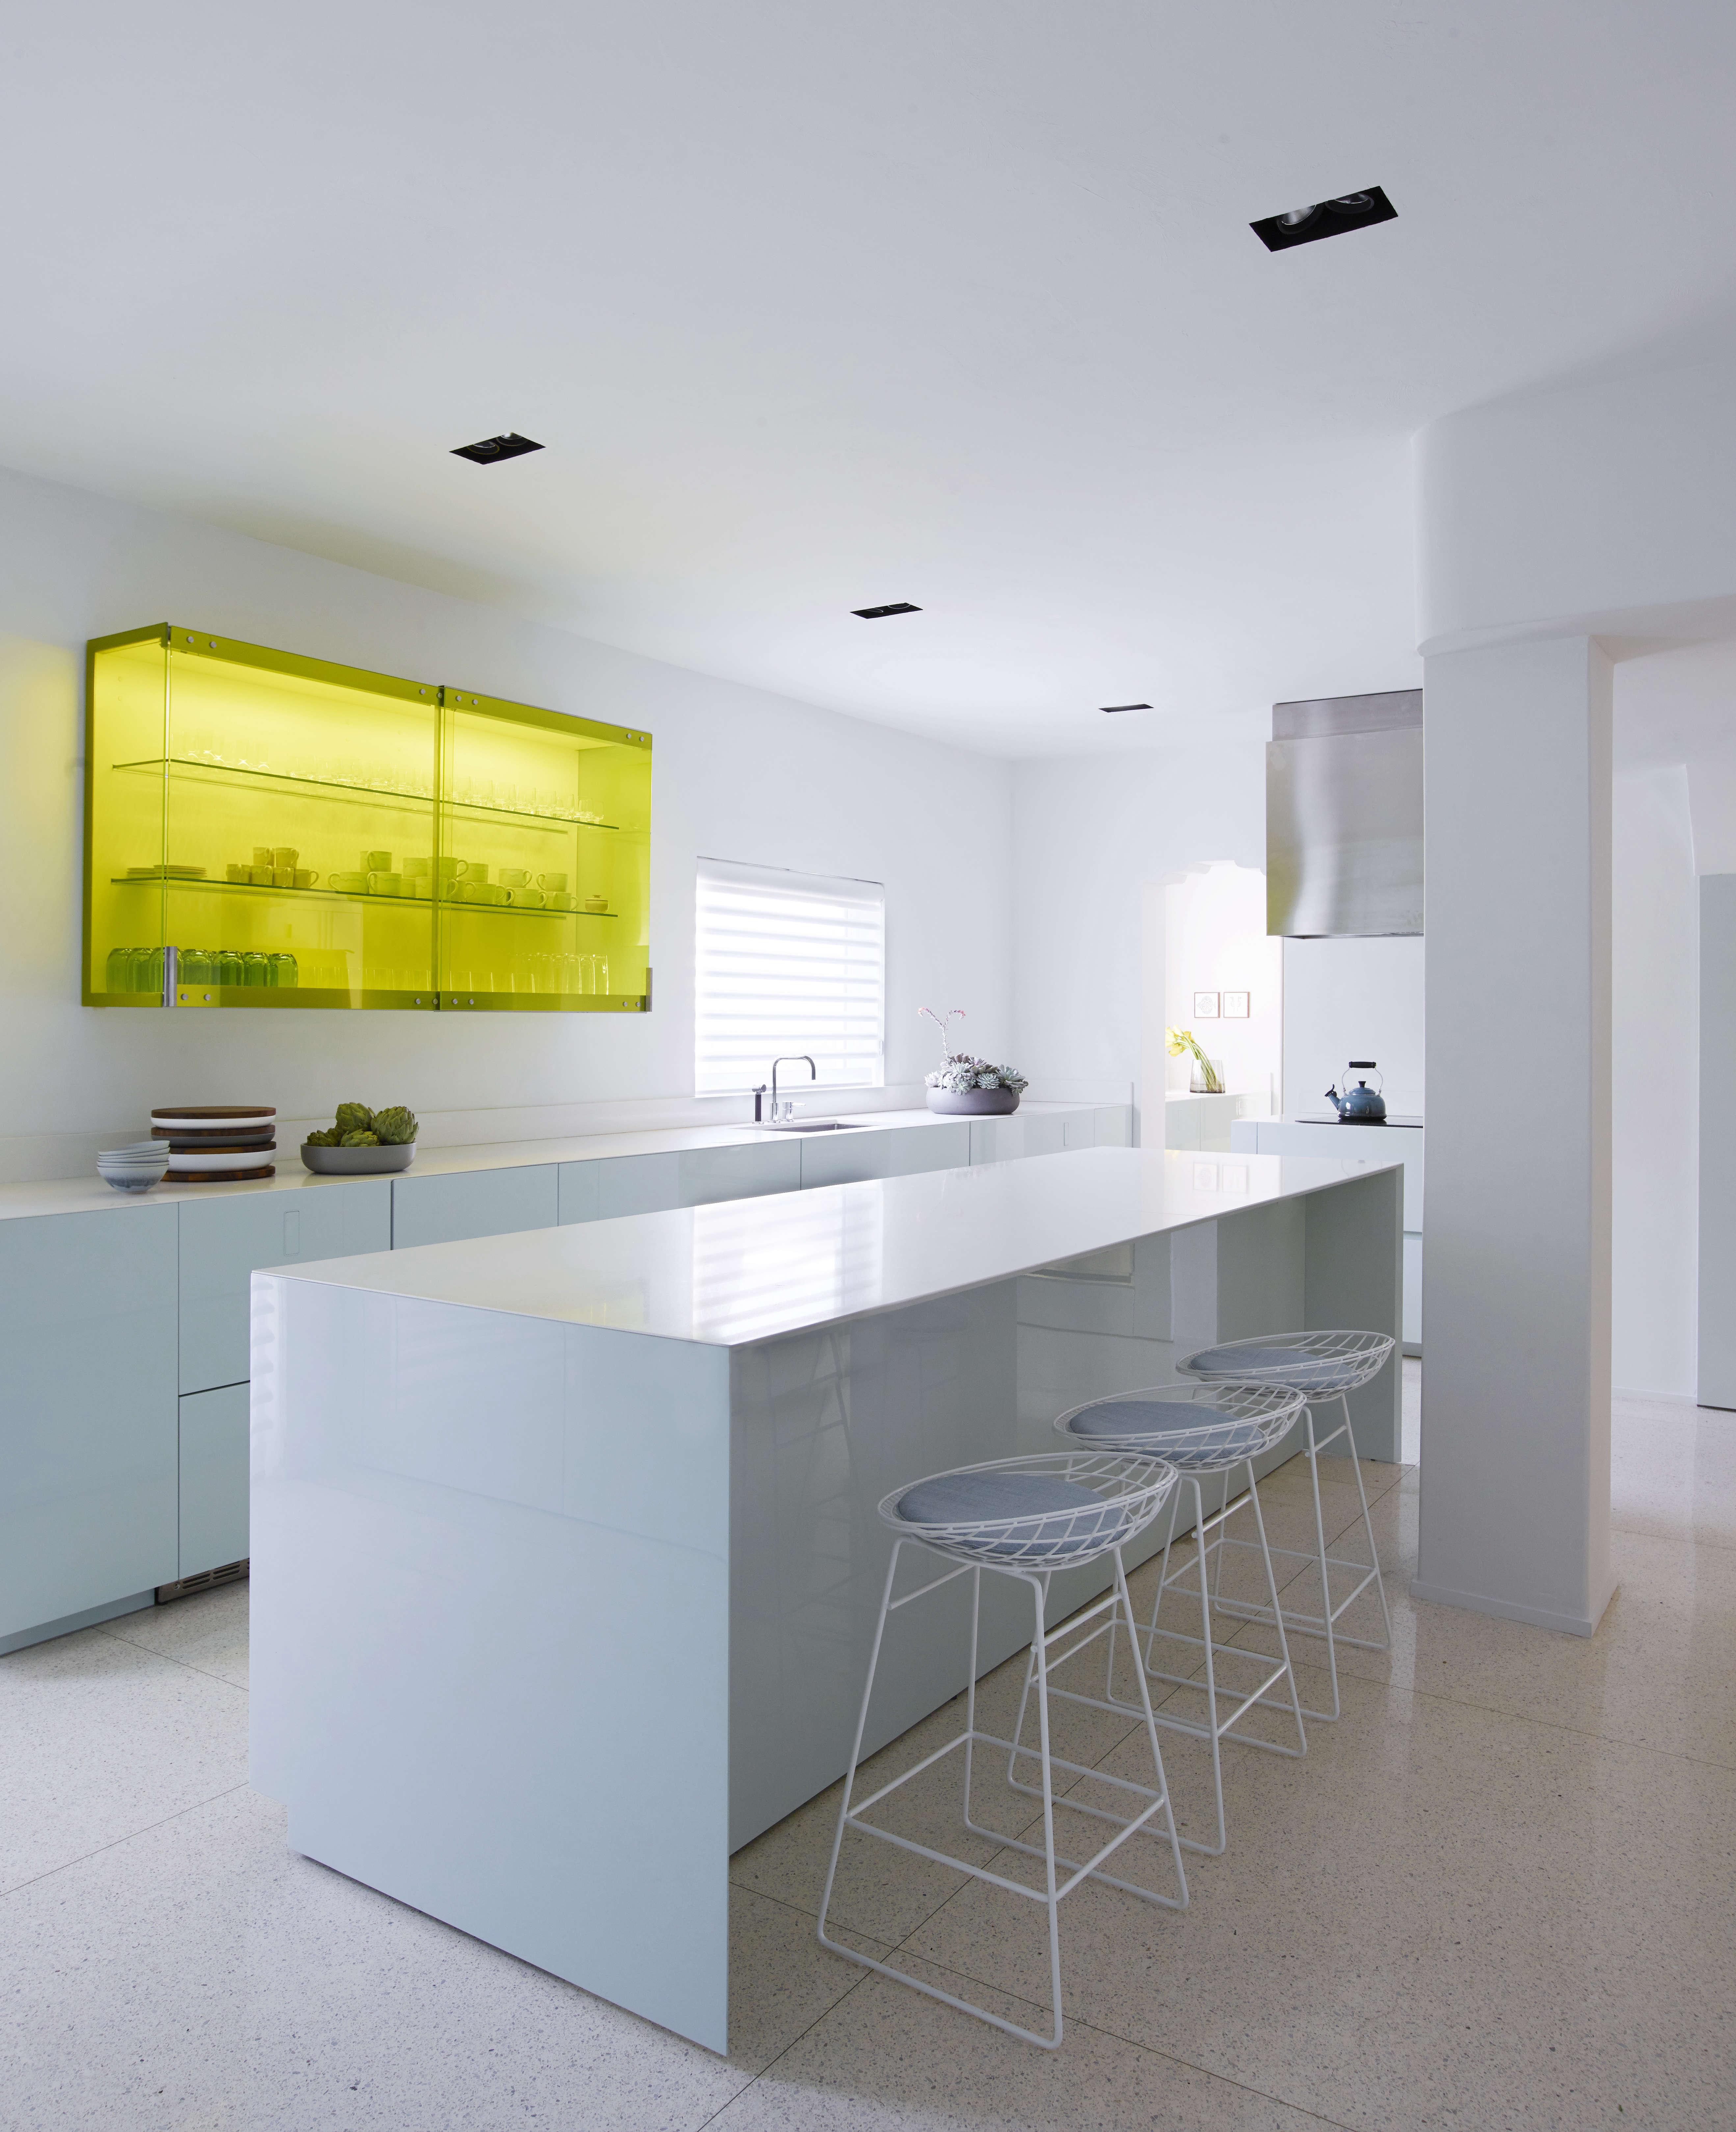 Minimalist contemporary kitchen in a revived 1932 Miami villa belonging to contemporary furniture dealer Stephan Weishaupt of Avenue Road, Richard-Powers photo   Remodelista